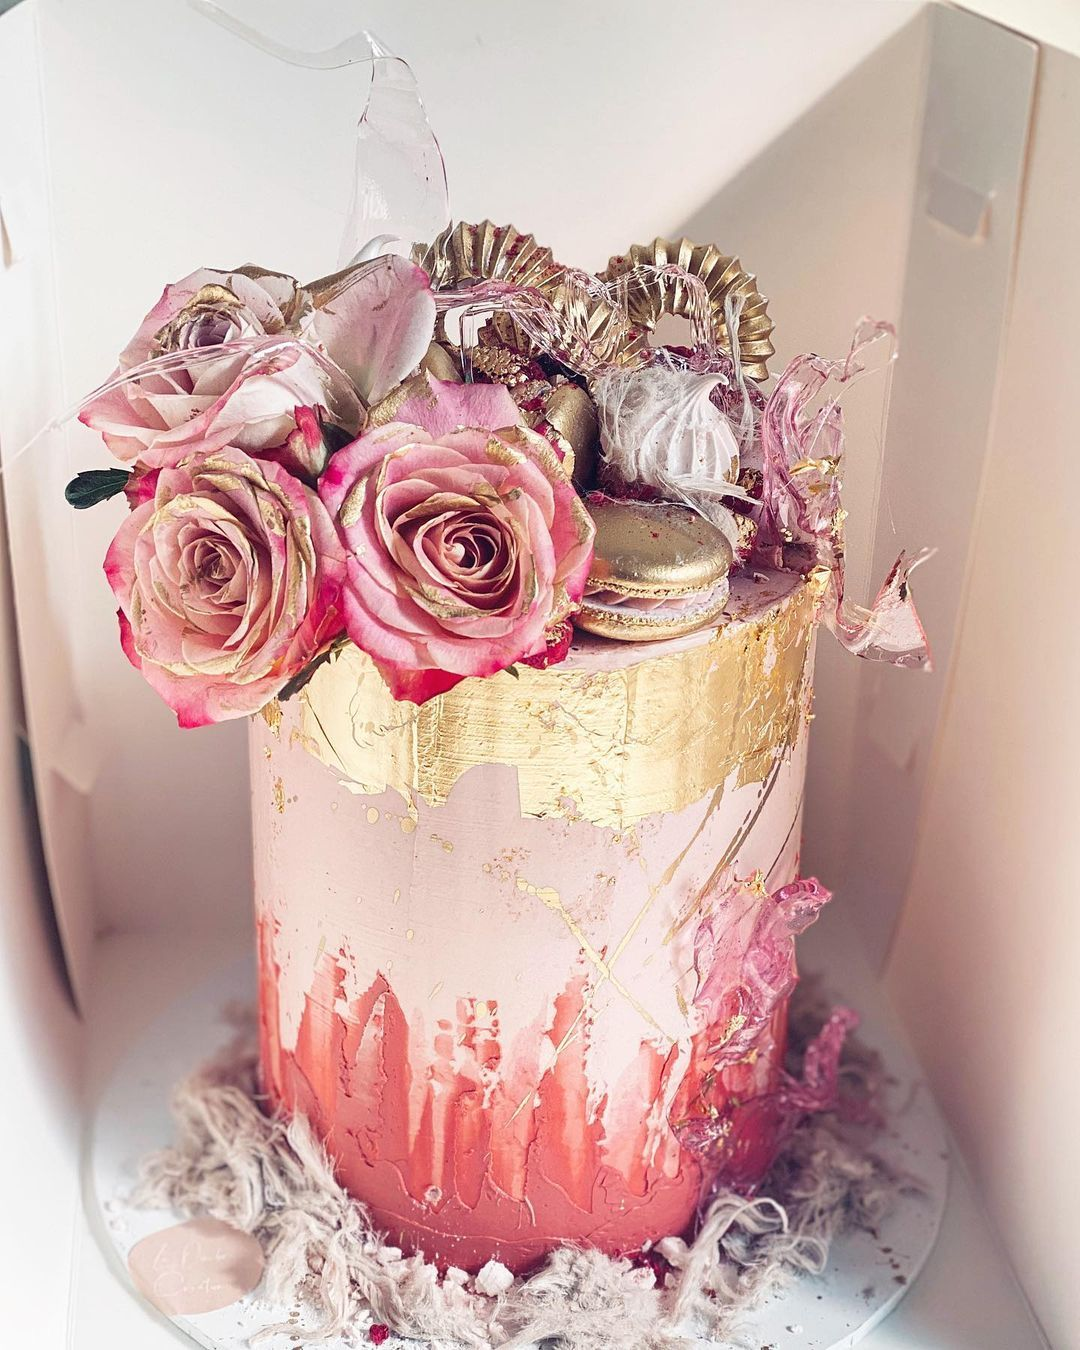 30 Small Rustic Wedding Cakes On A Budget | Wedding